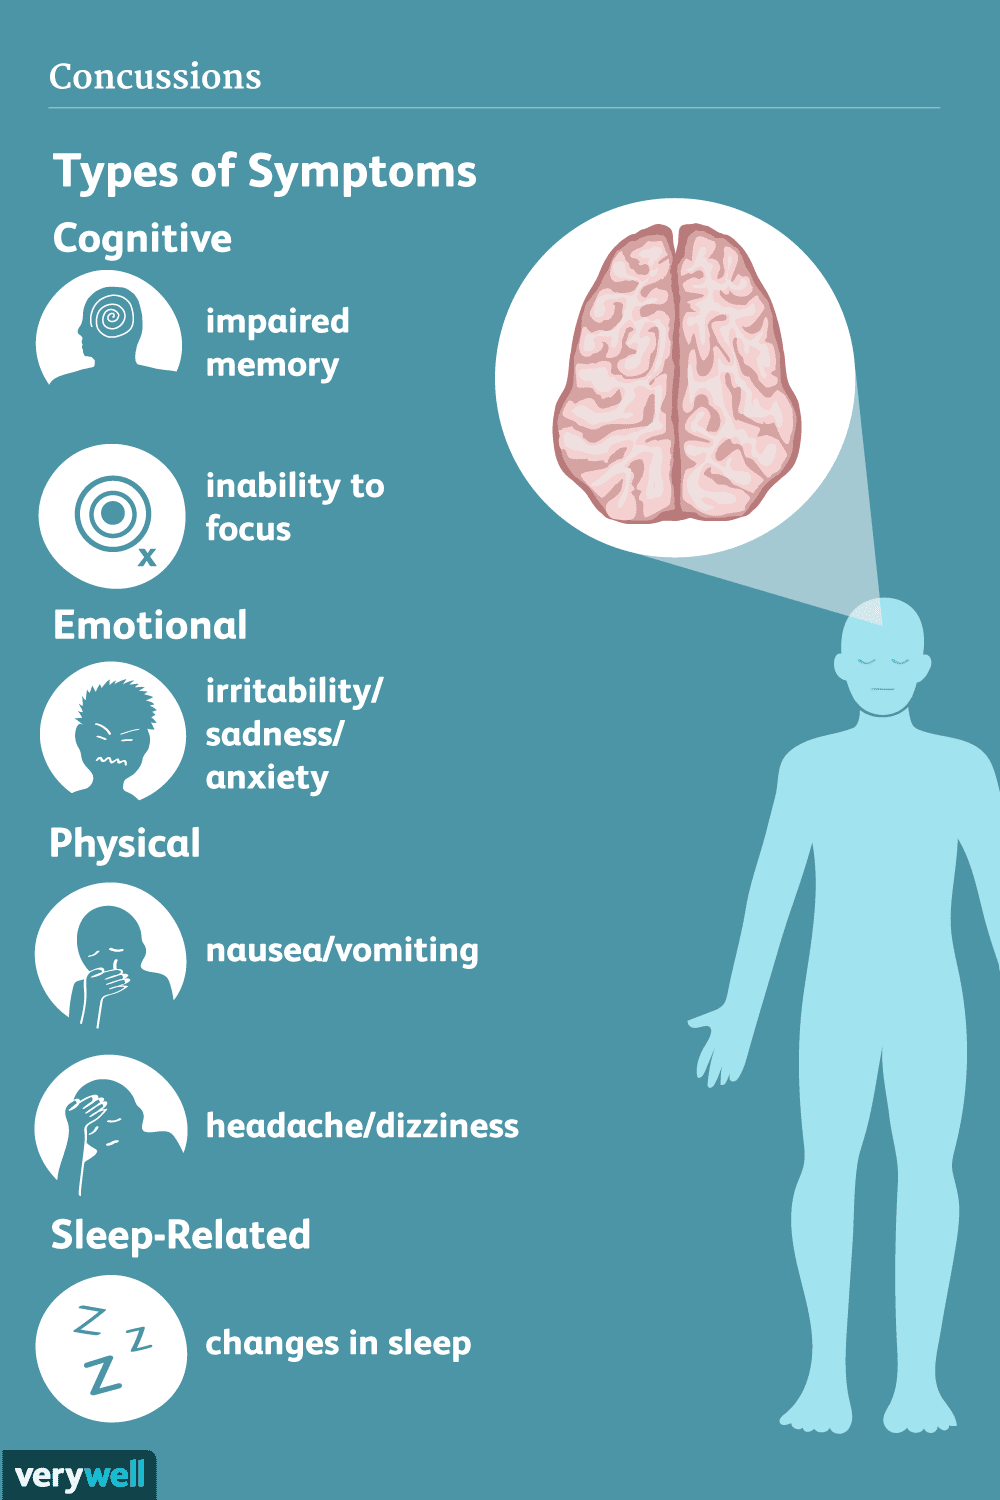 Concussion: Signs, Symptoms, and Complications